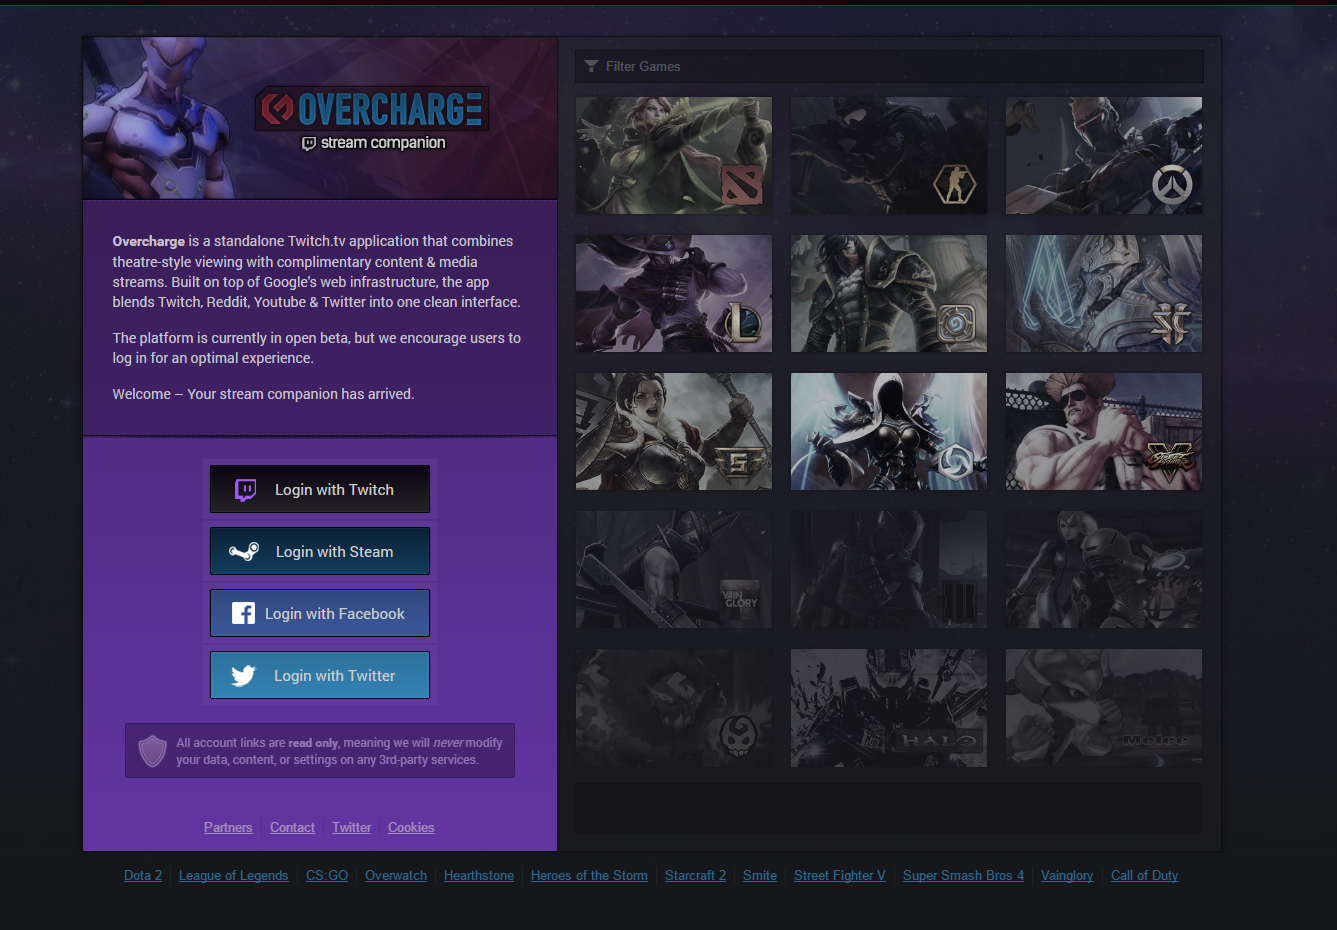 overcharge tv gaming app twitch streams companion